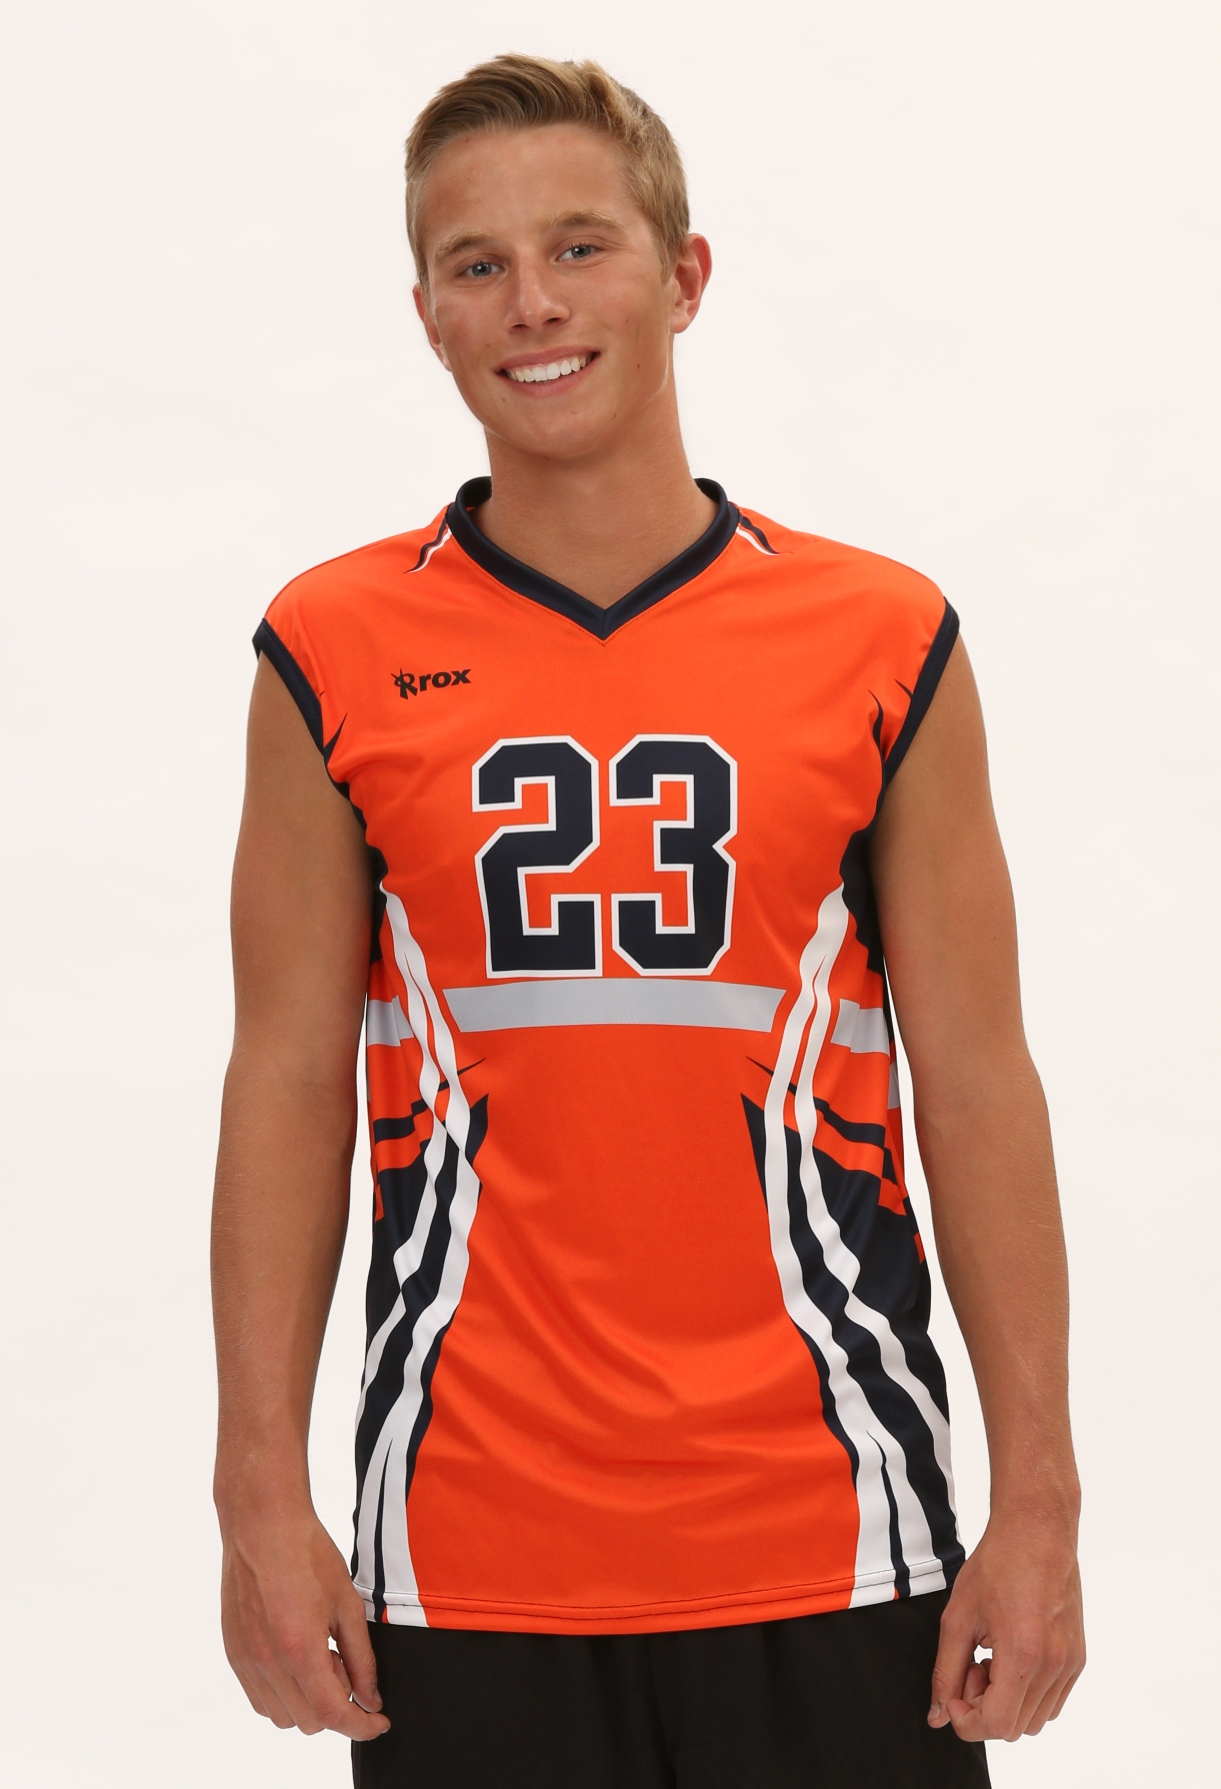 Vertigo Men S Sublimated Jersey Sports Jersey Design Volleyball Jersey Design Jersey